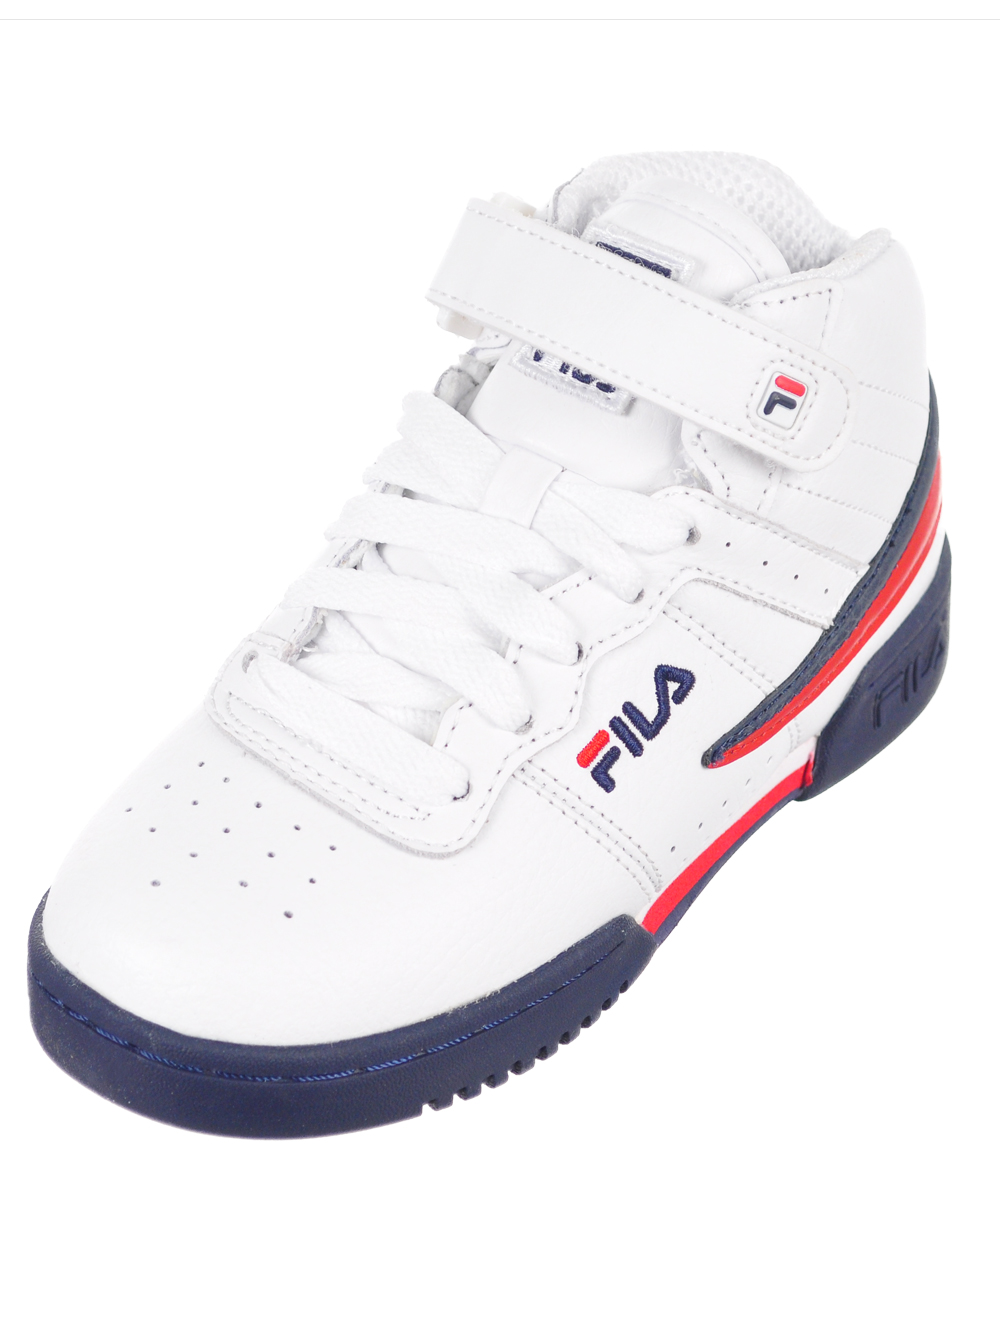 Boys' F 13 Hi Top Sneakers by Fila in Whitenavyred